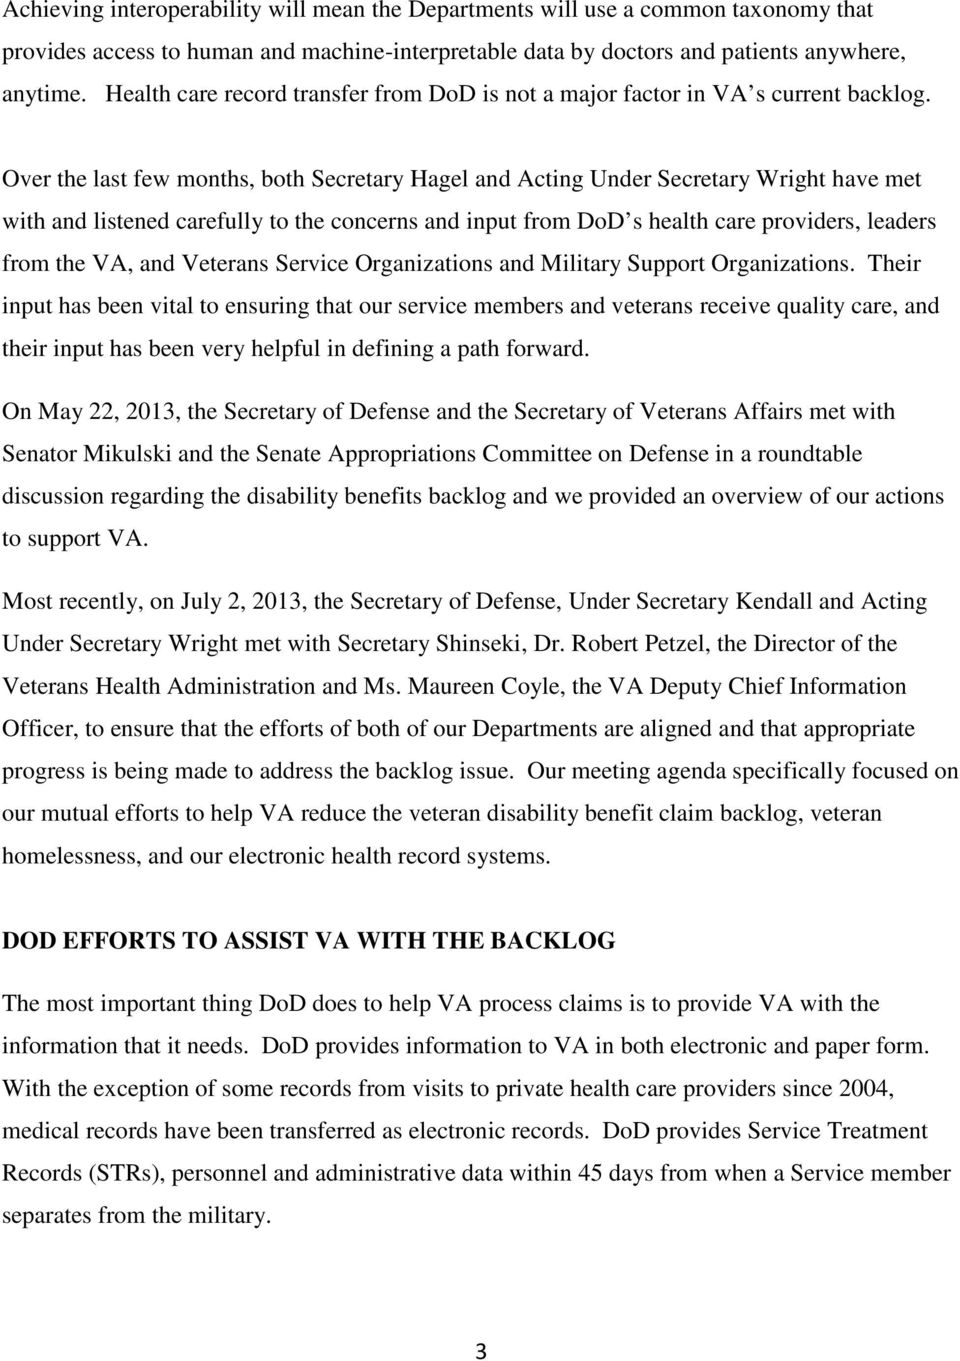 Over the last few months, both Secretary Hagel and Acting Under Secretary Wright have met with and listened carefully to the concerns and input from DoD s health care providers, leaders from the VA,